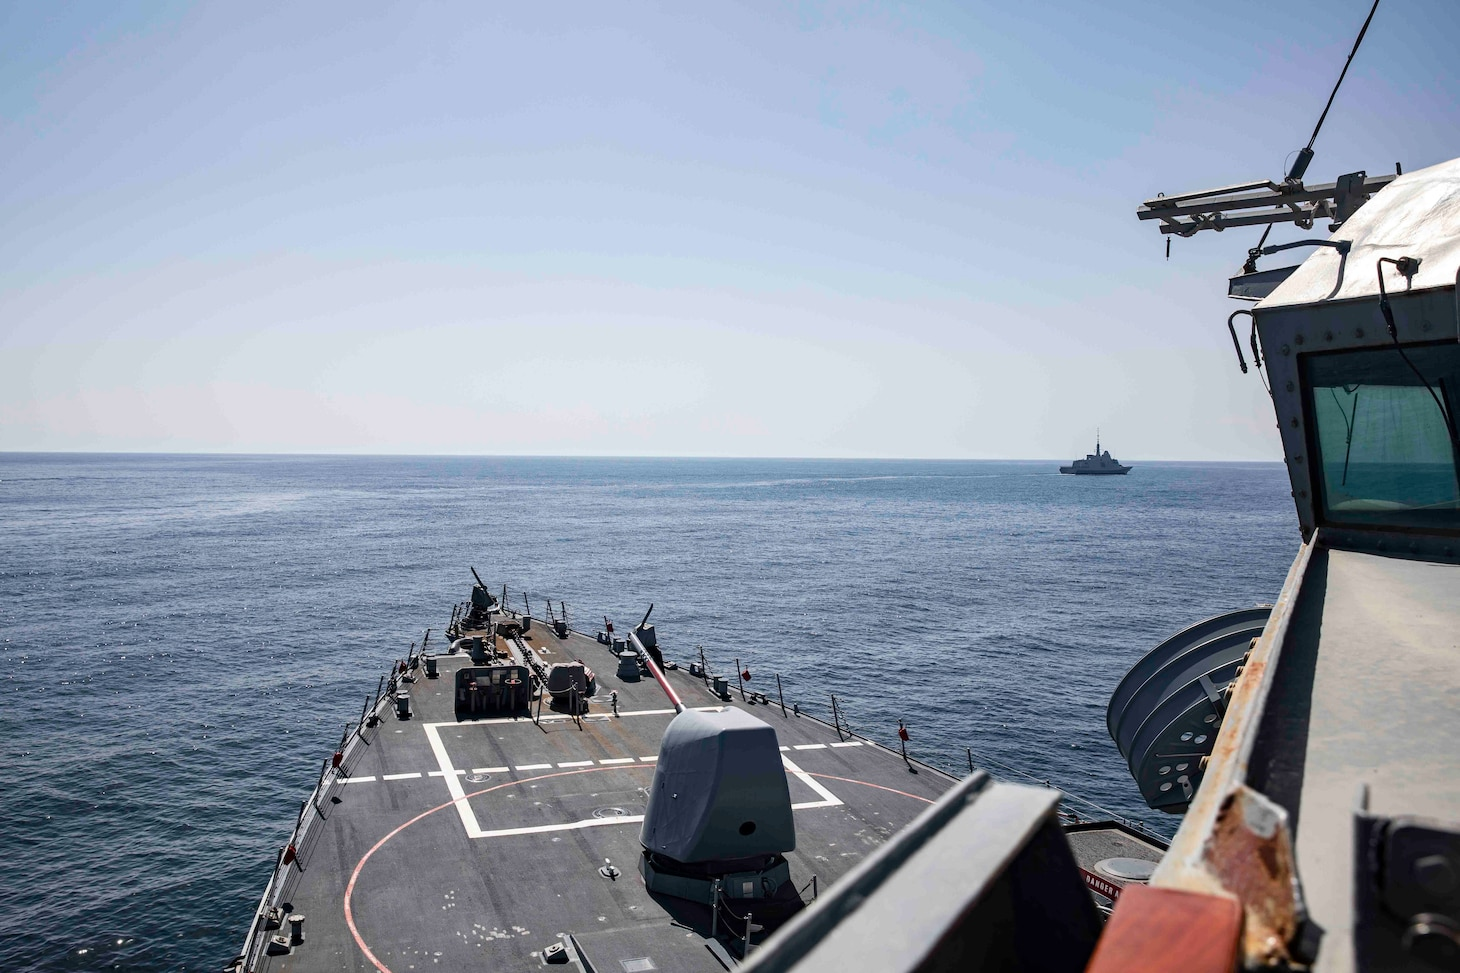 (March 11, 2021) The Arleigh Burke-class guided-missile destroyer USS Porter (DDG 78) participates in exercise Atlas Handshake with the Royal Moroccan Navy multipurpose frigate RMN Mohammed VI (F 701), March 11, 2021. Porter, forward deployed to Rota, Spain, is on its ninth patrol in the U.S. Sixth Fleet area of operations in support of U.S. national interests and security in Europe and Africa.